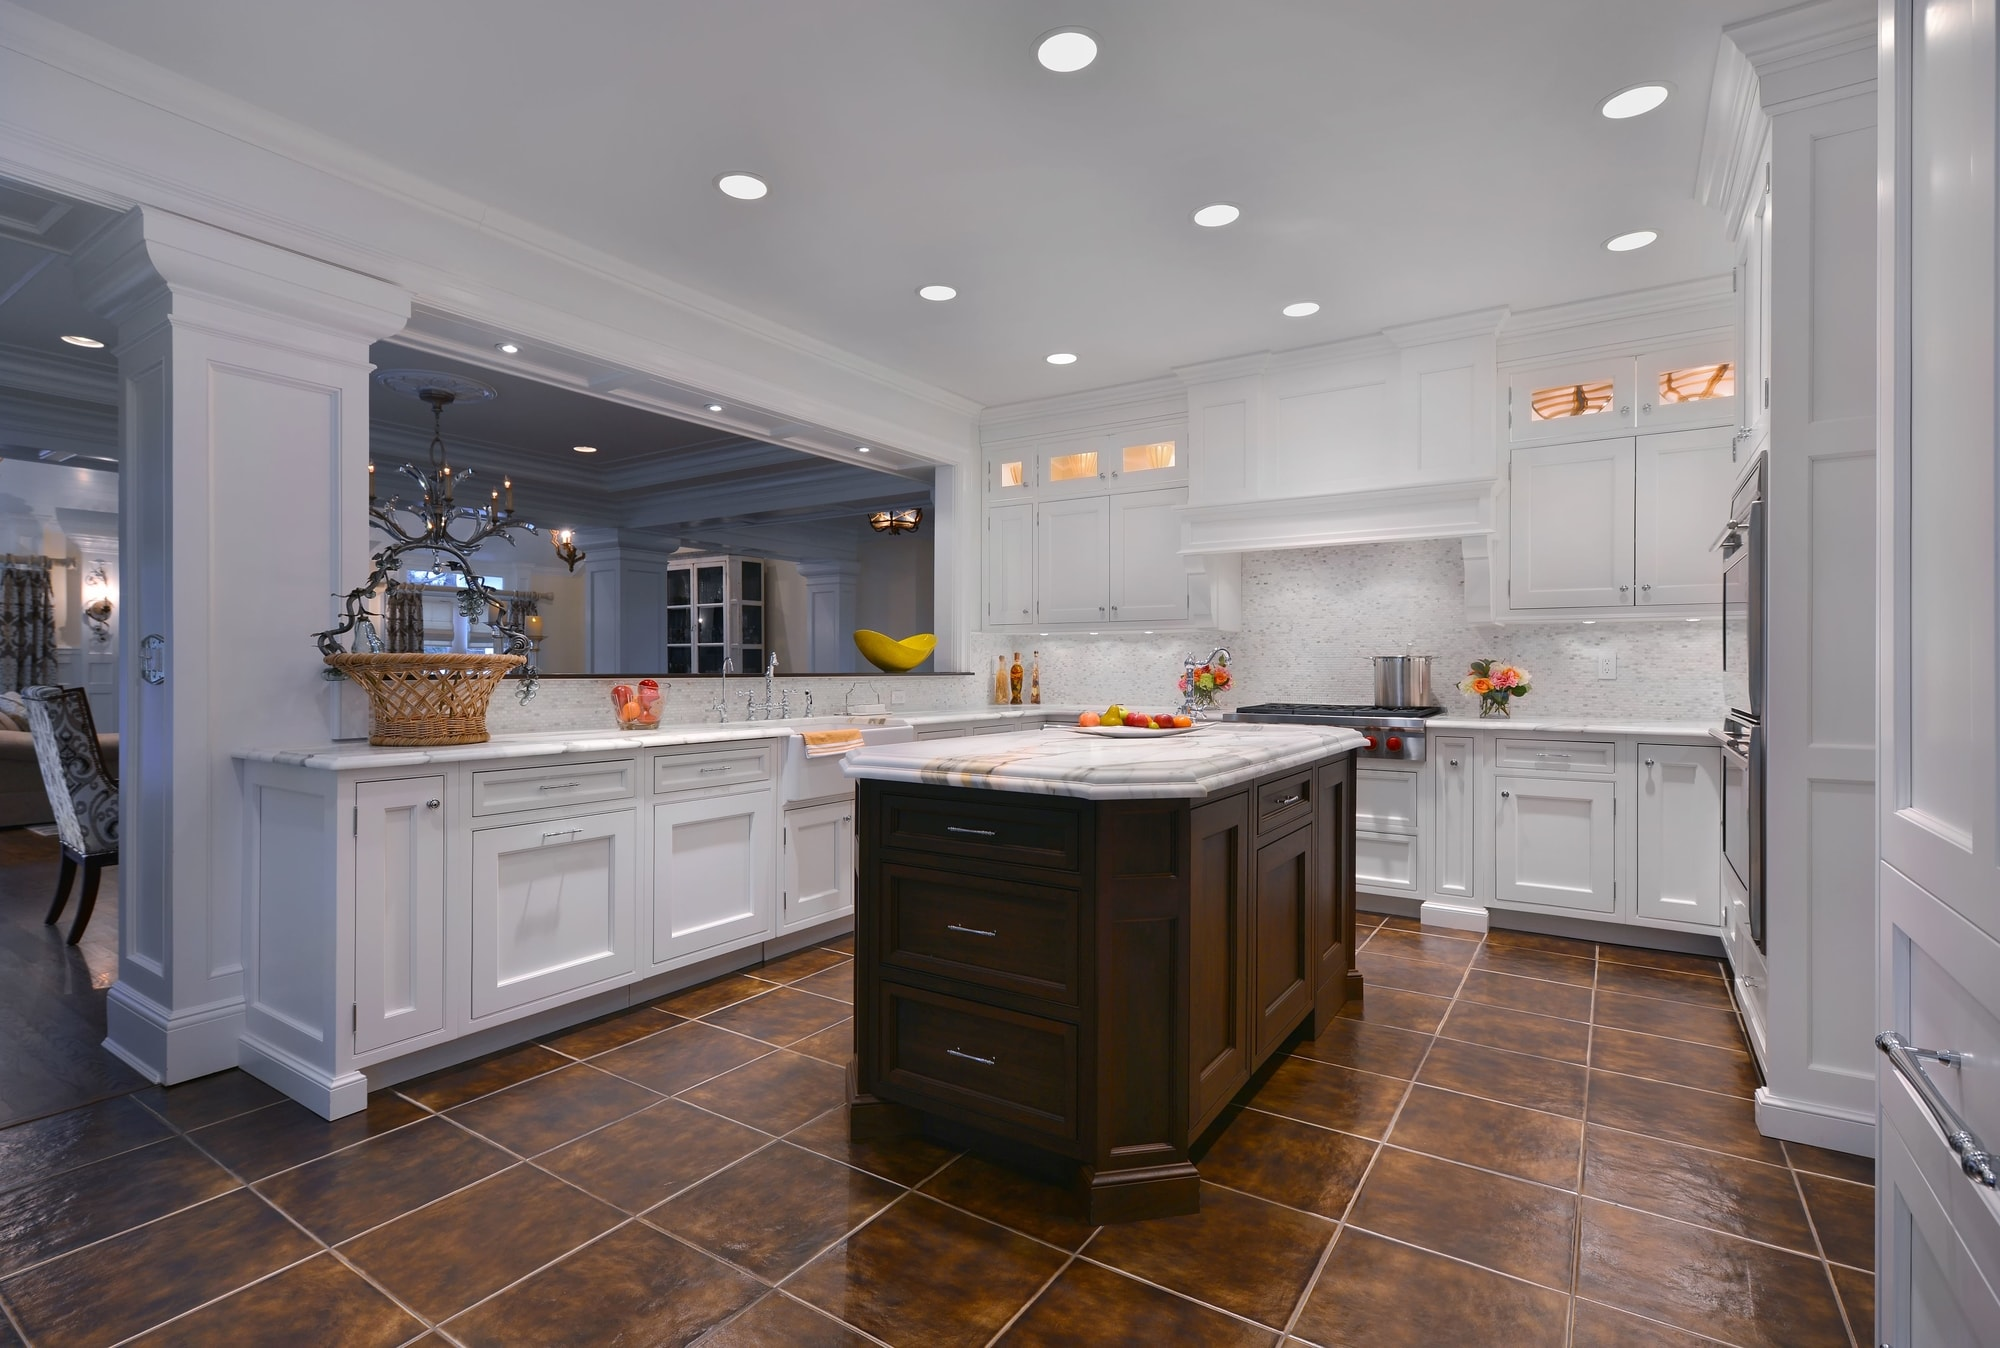 Transitional style kitchen with center island